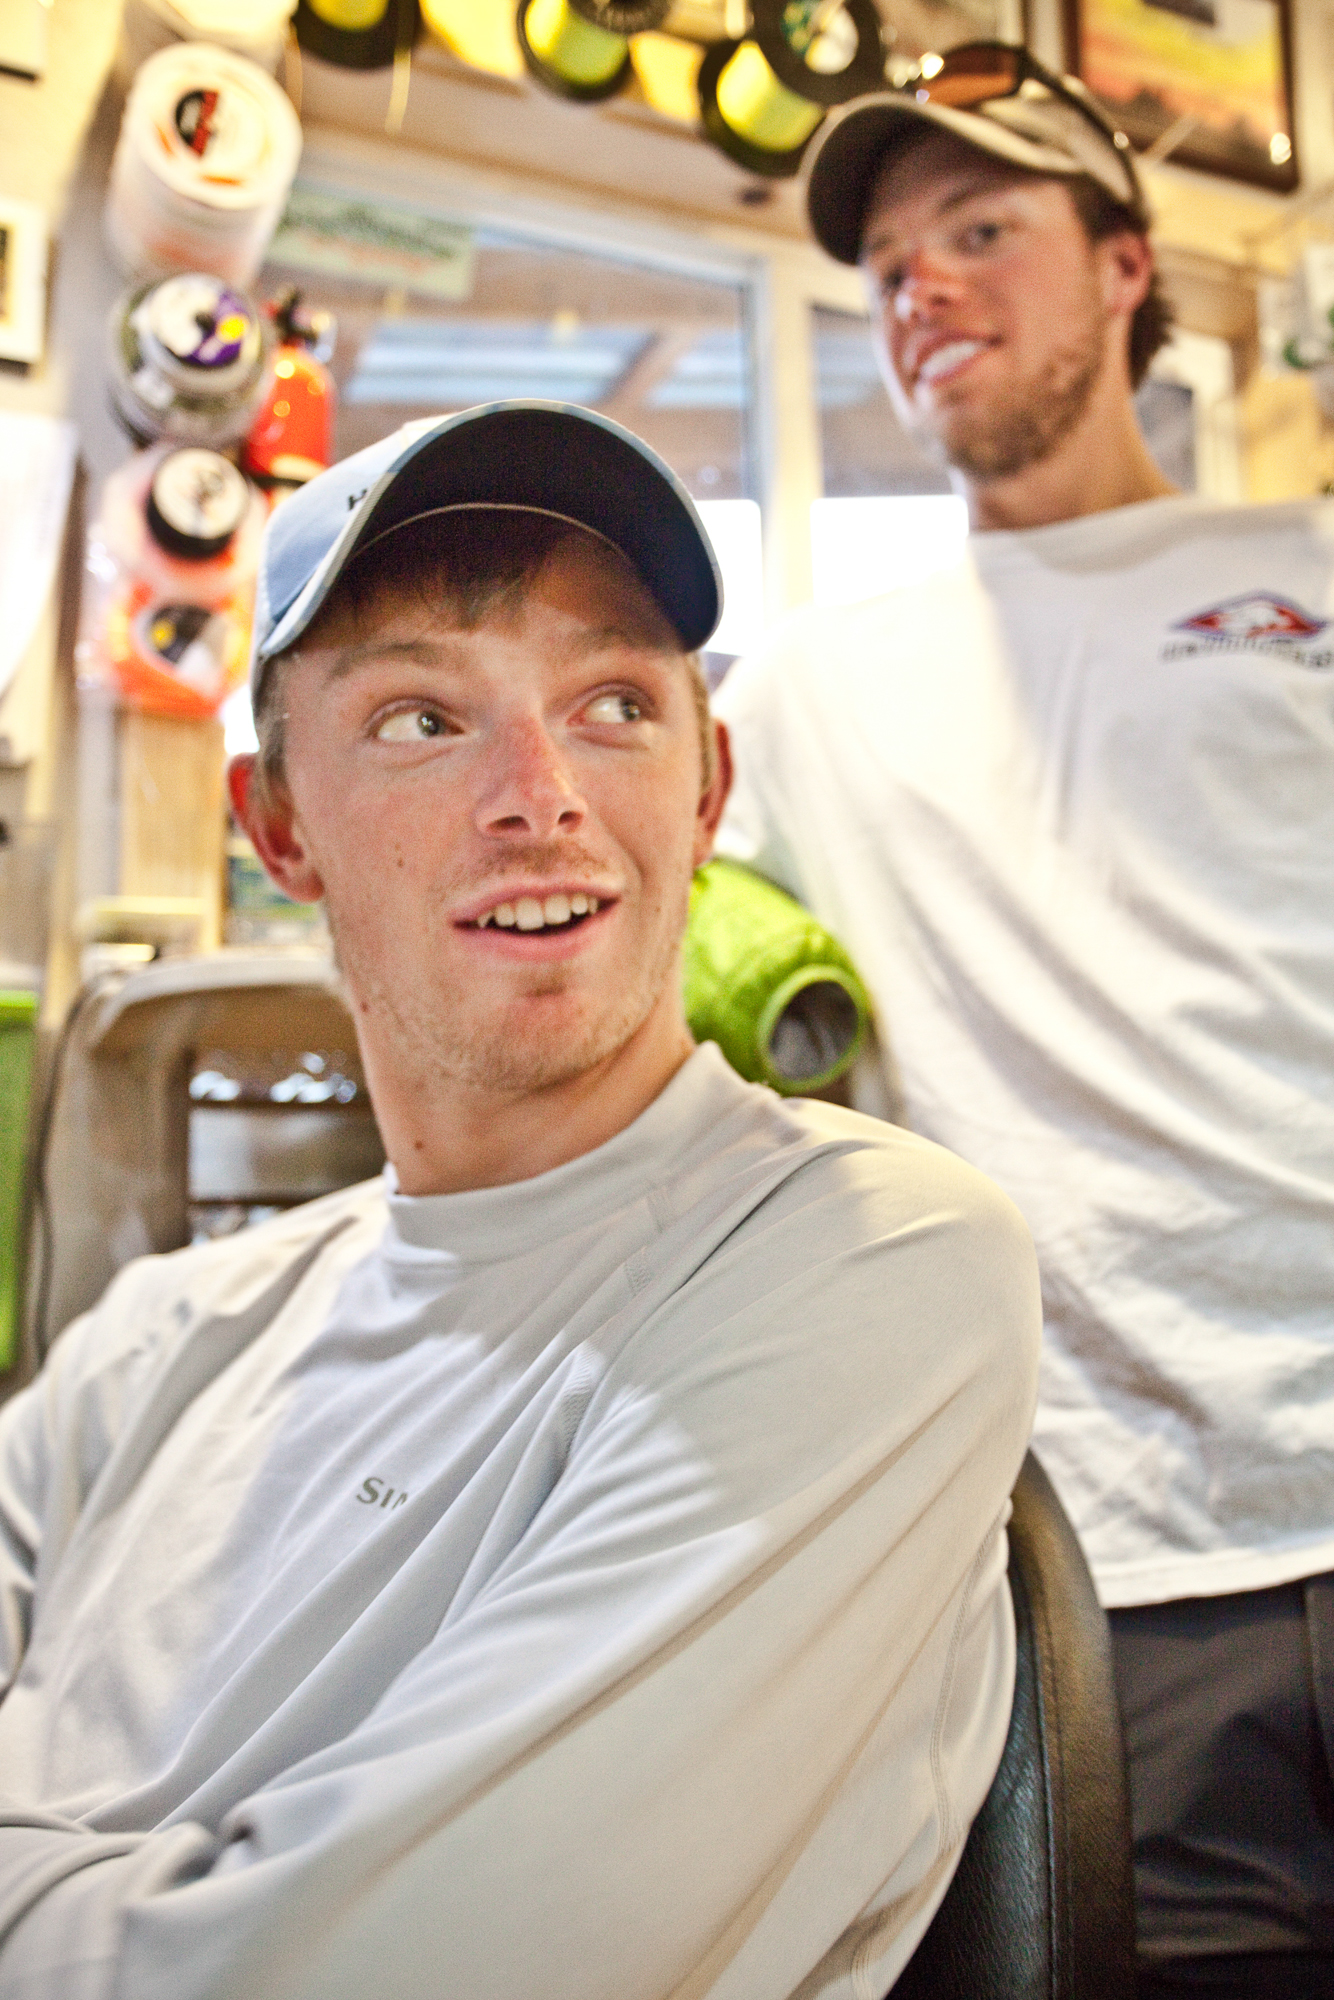 Long shops nights. When the guides are in and the rental boats still out, it's time to clean and restock. When the work is done, fly-fishing video watching begins. Jake Gates and Travis Whitfield enjoy a rare moment of down time.